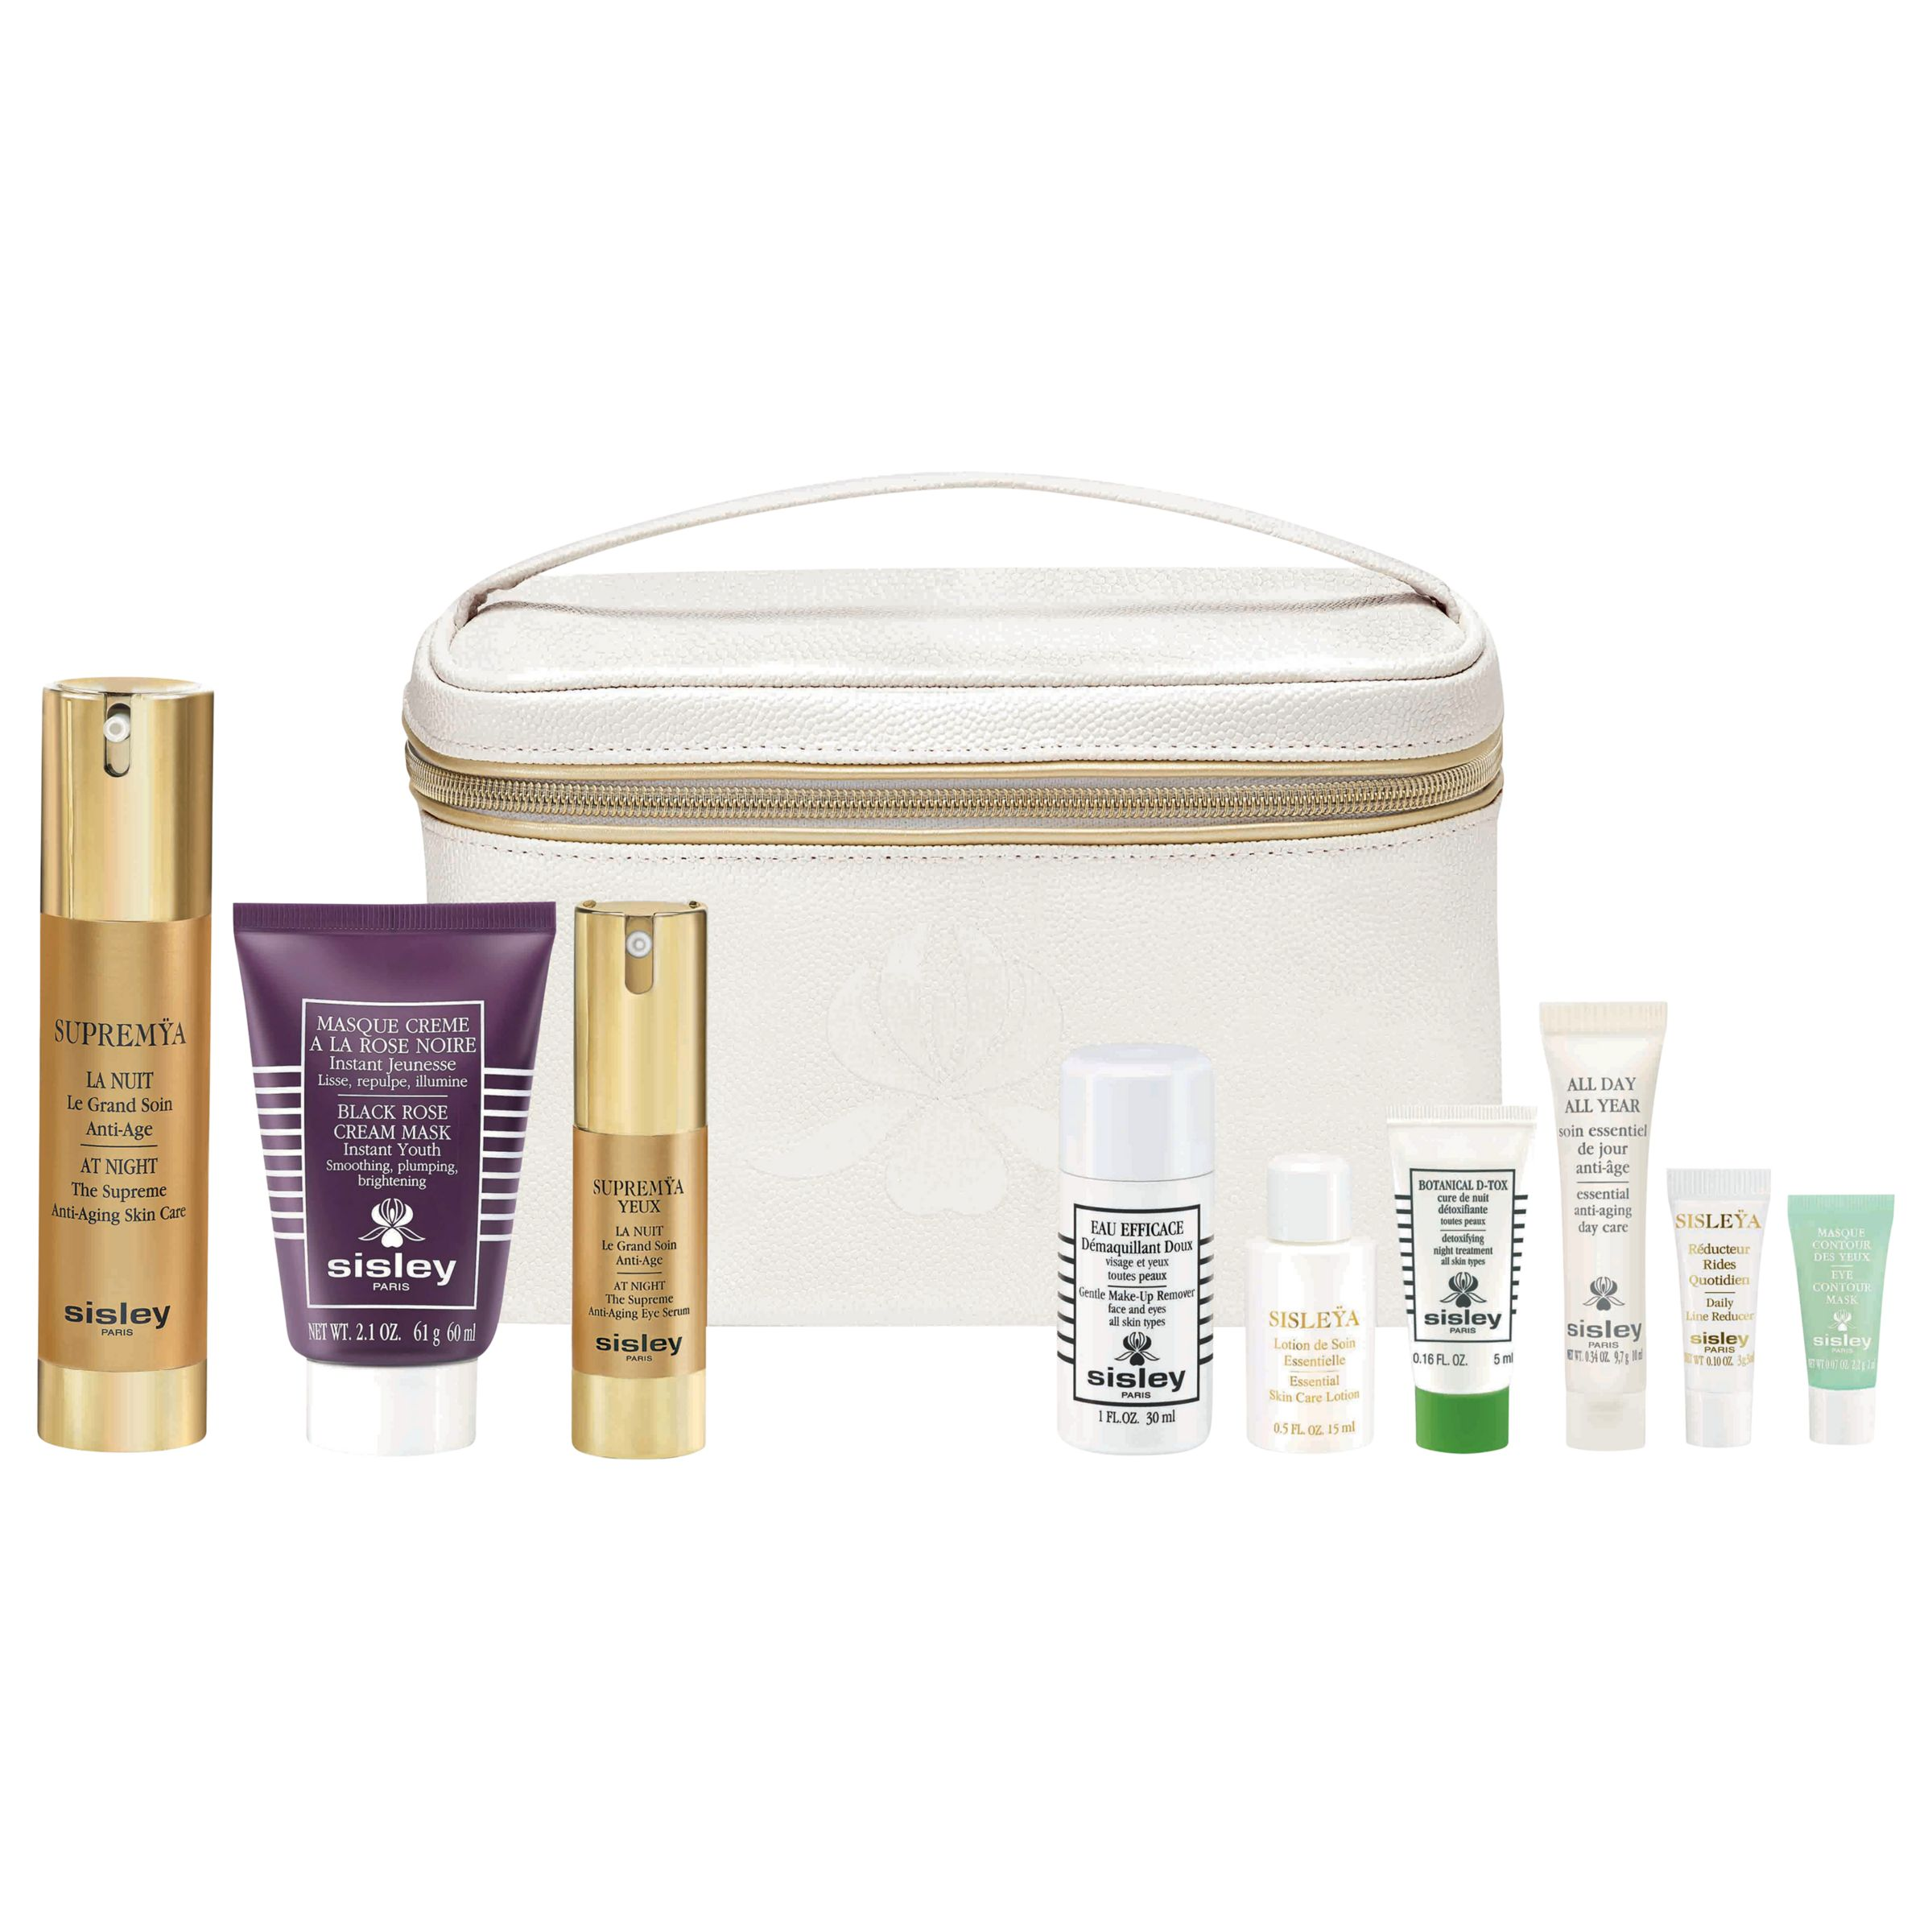 Sisley Sisley Anti-Ageing Night Programme Skincare Set